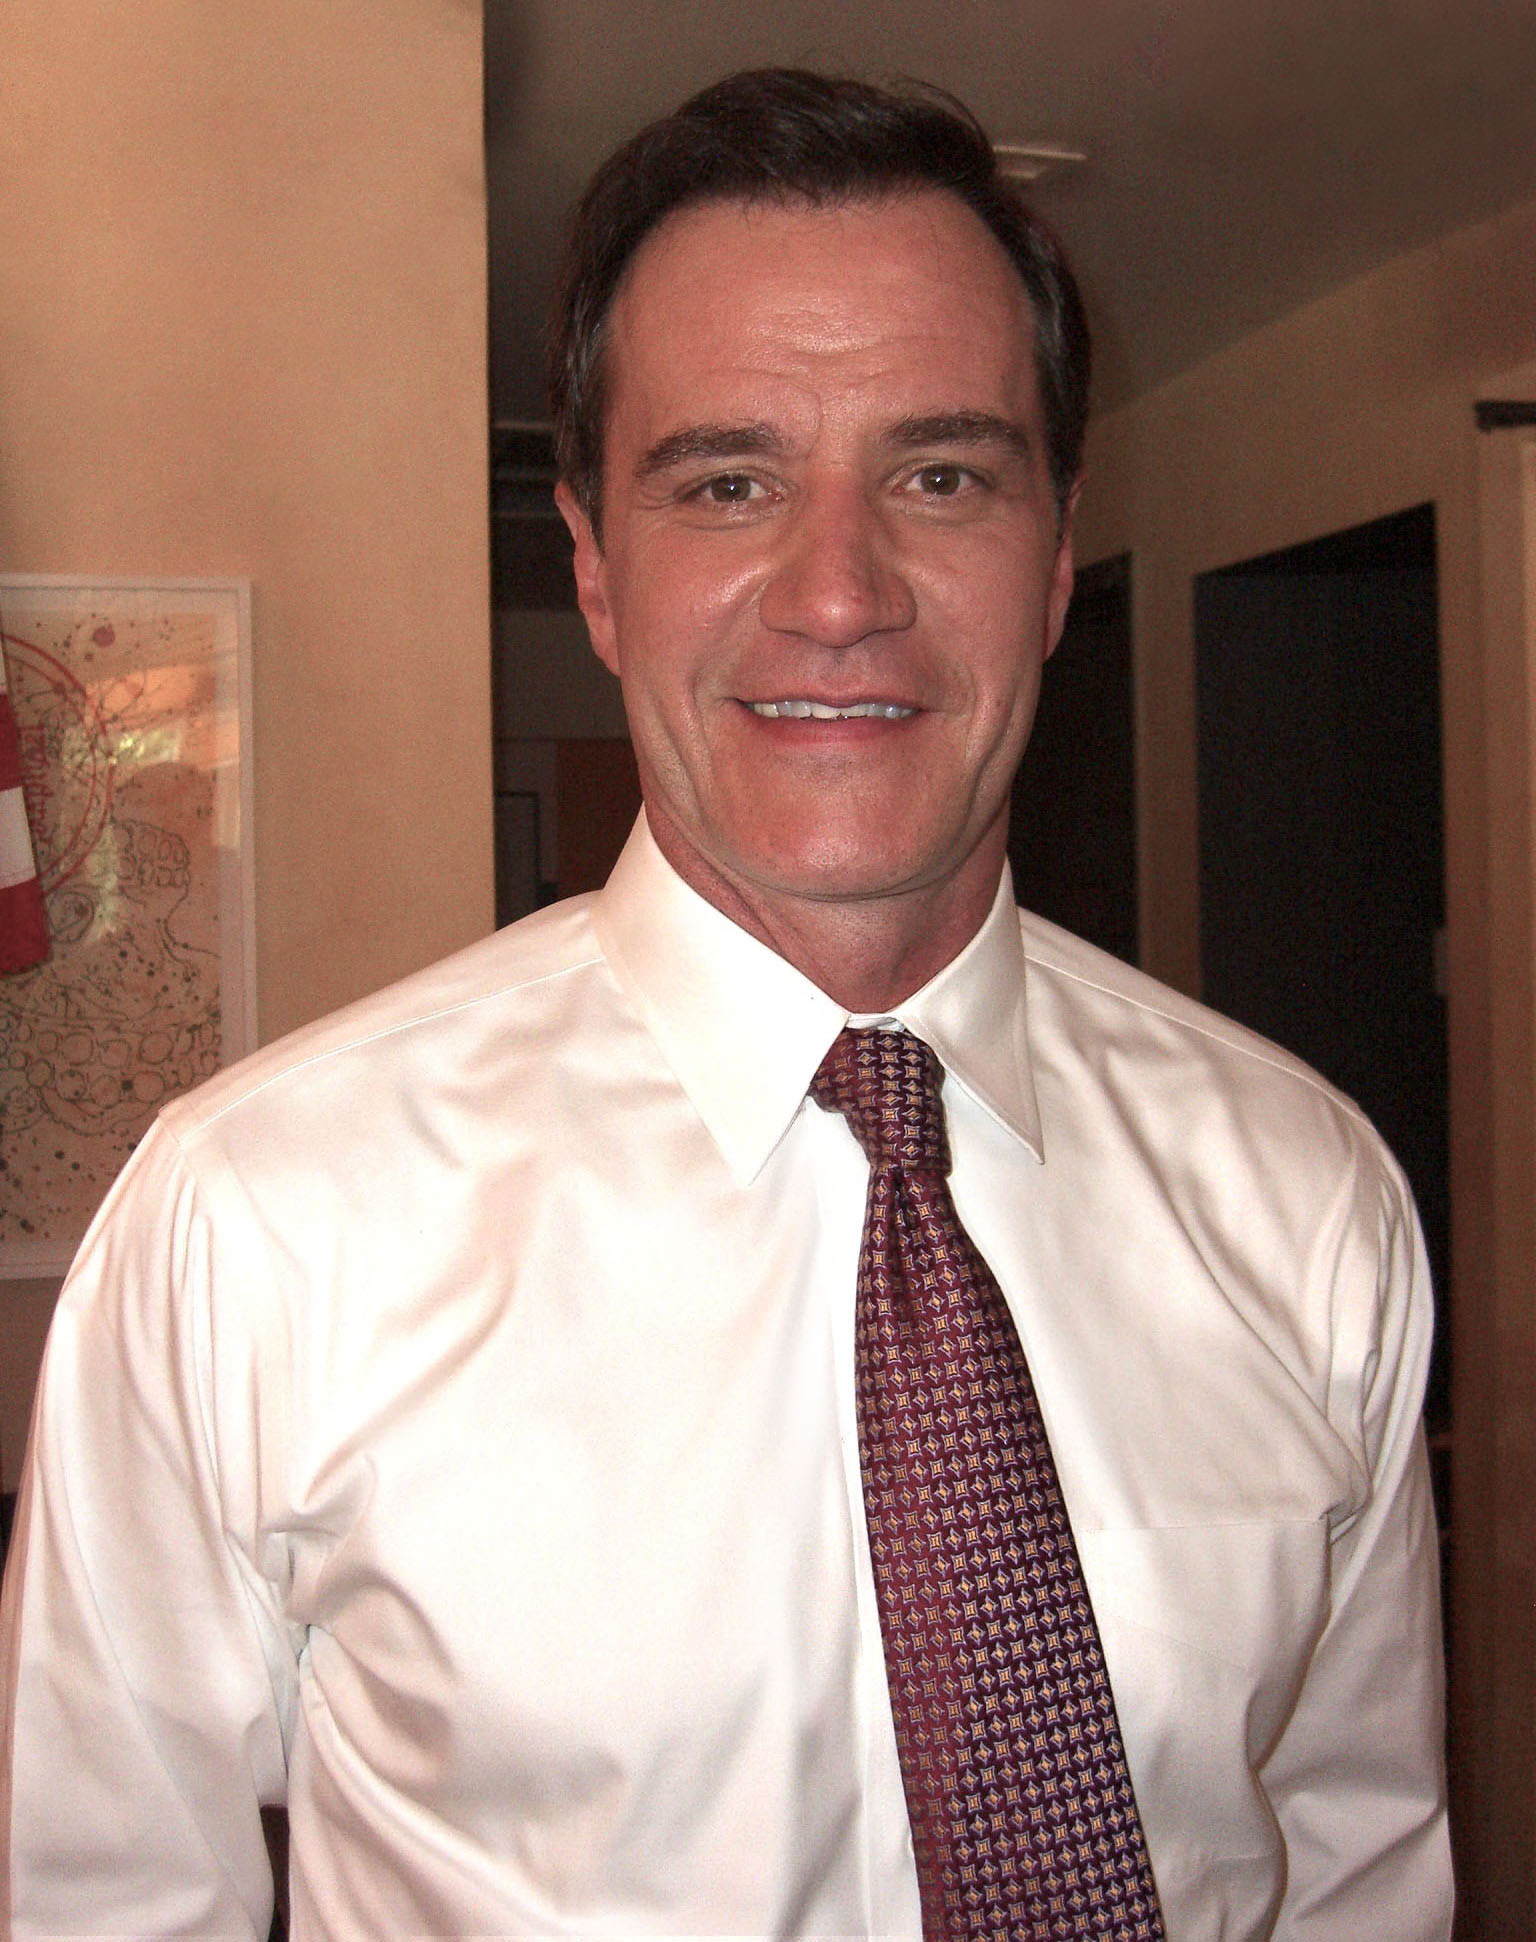 Tim Dekay Wikipedia He starred in the usa network series white collar , which chronicled the partnership between a con artist and an fbi agent.1. tim dekay wikipedia